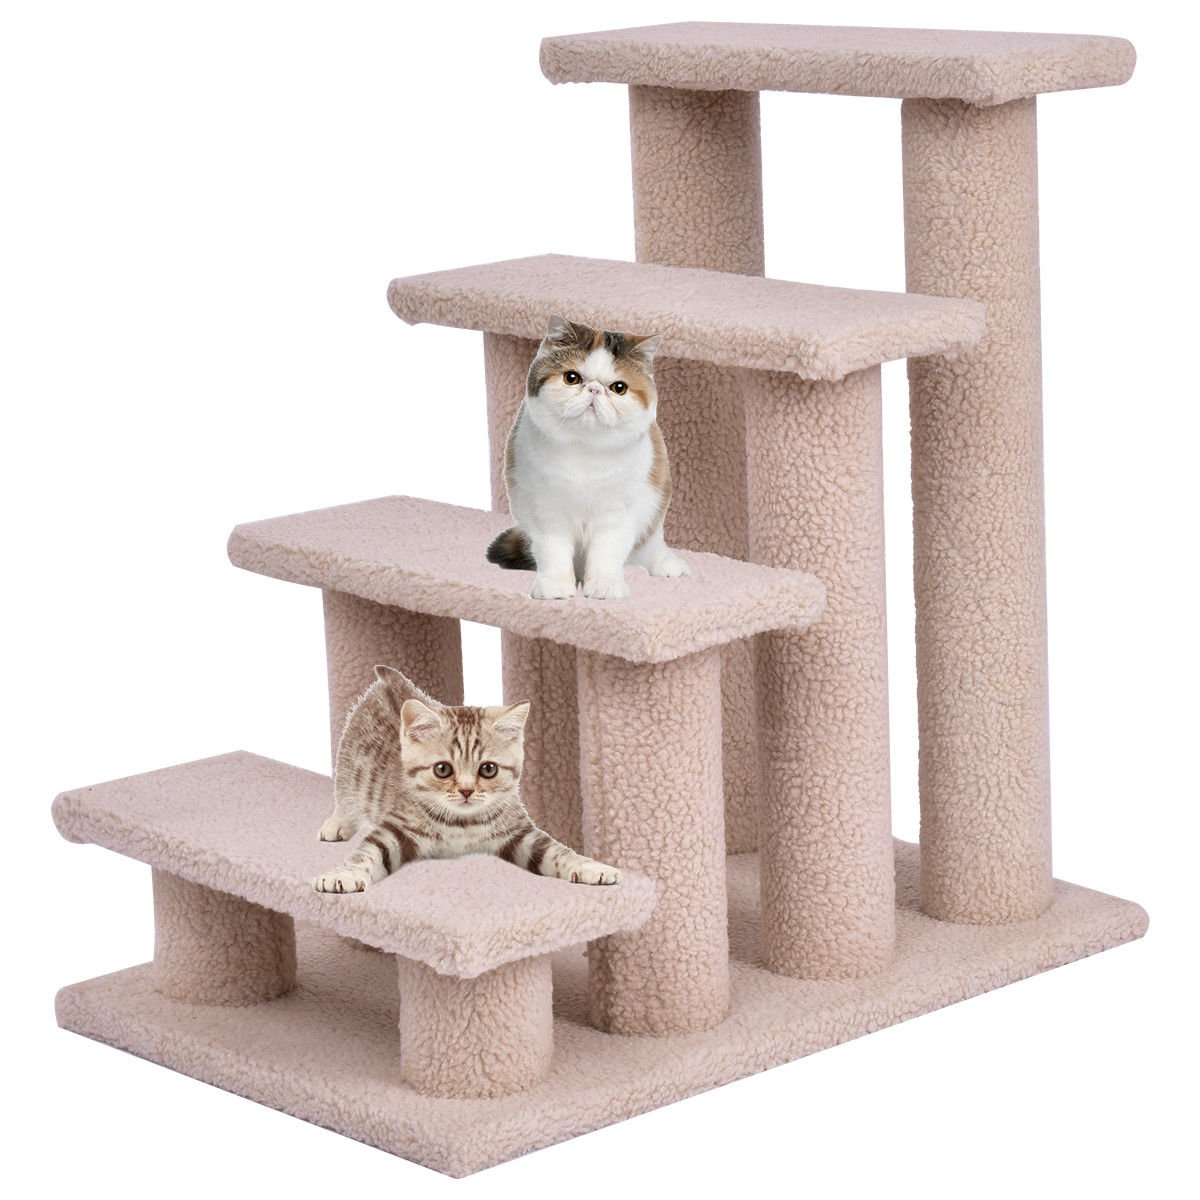 TANGKULA Pet Stairs Ramp for Cats and Dogs Cat Climber Kitten Steps